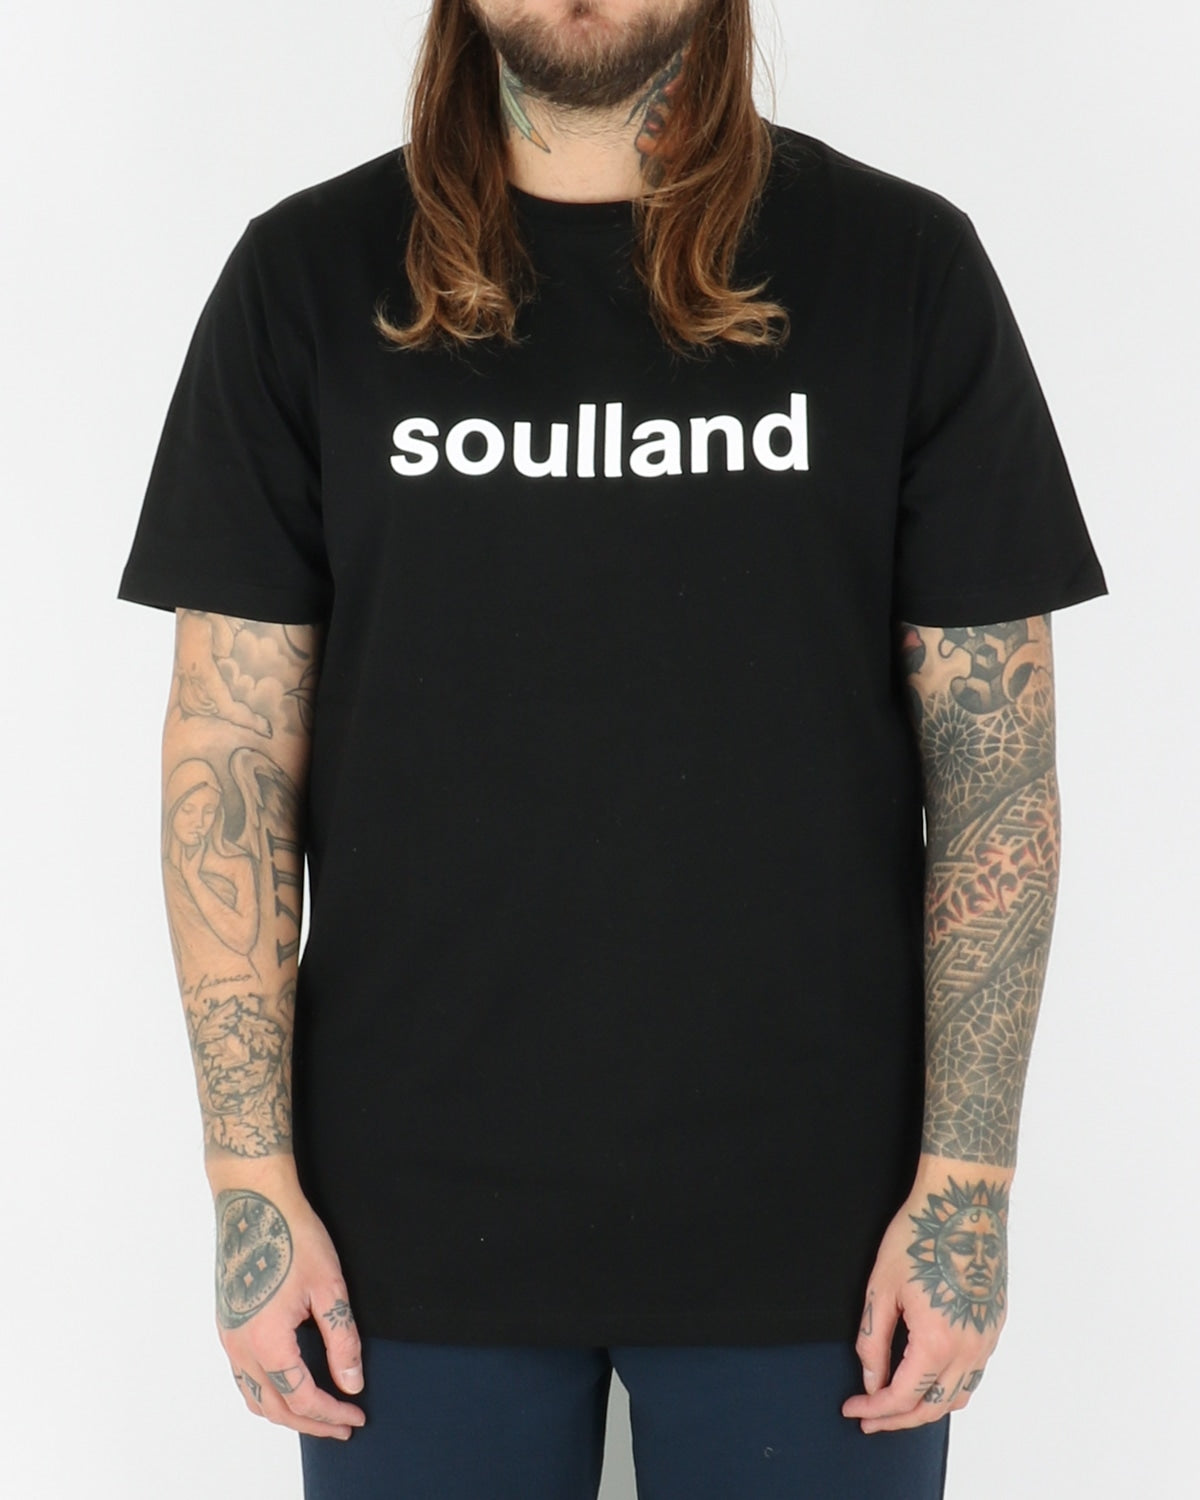 soulland_chuck t-shirt_black_1_3